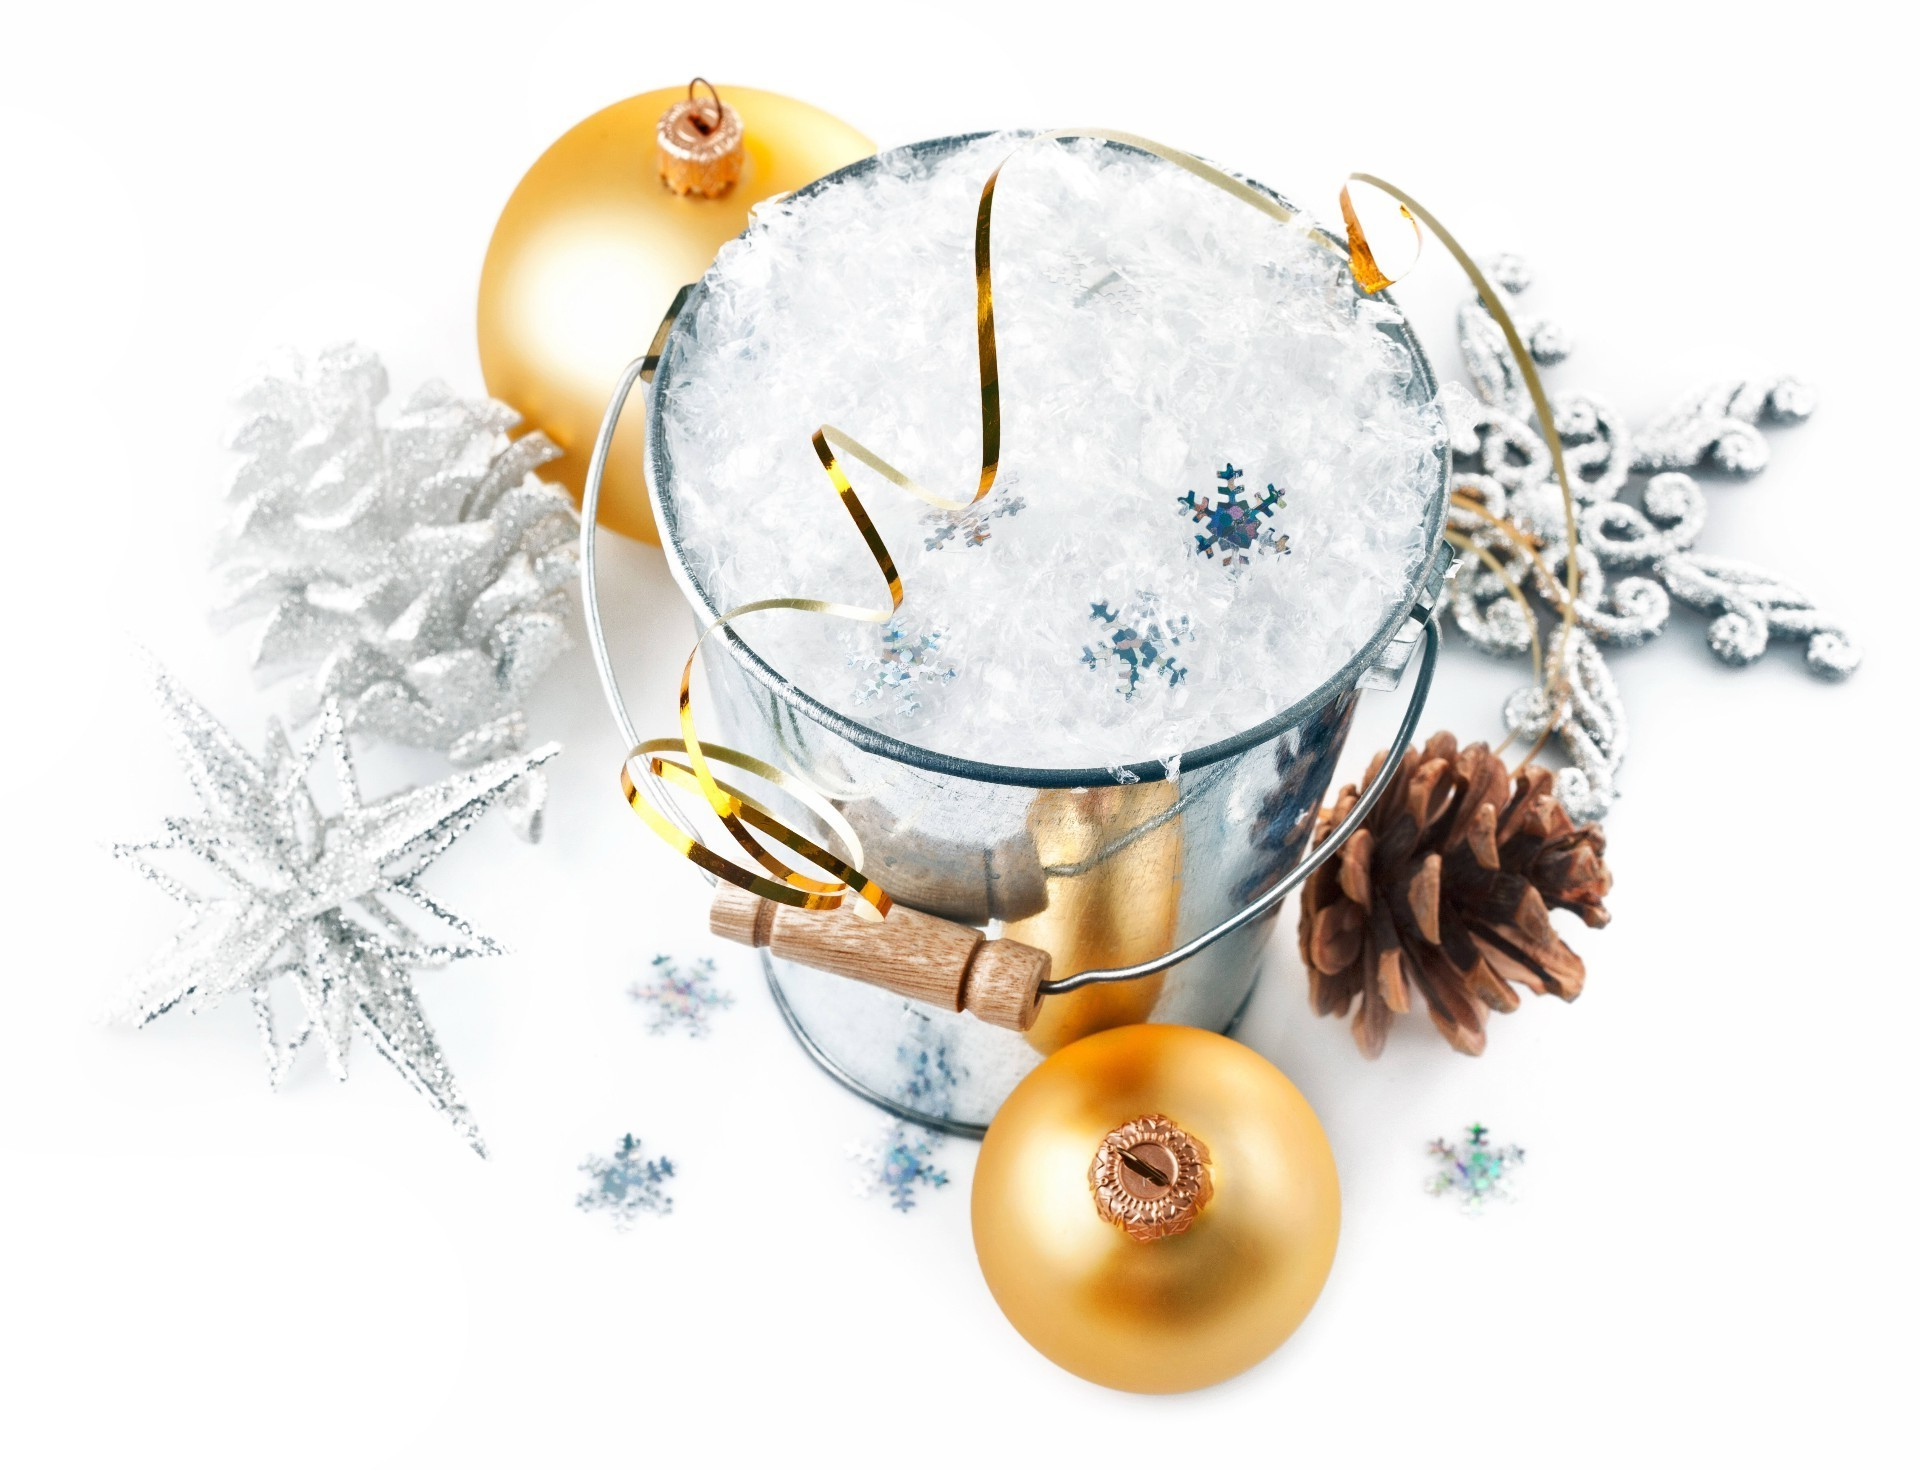 new year winter christmas ball celebration decoration desktop glass gold sphere bangle merry season thread bright snowflake traditional snow shining